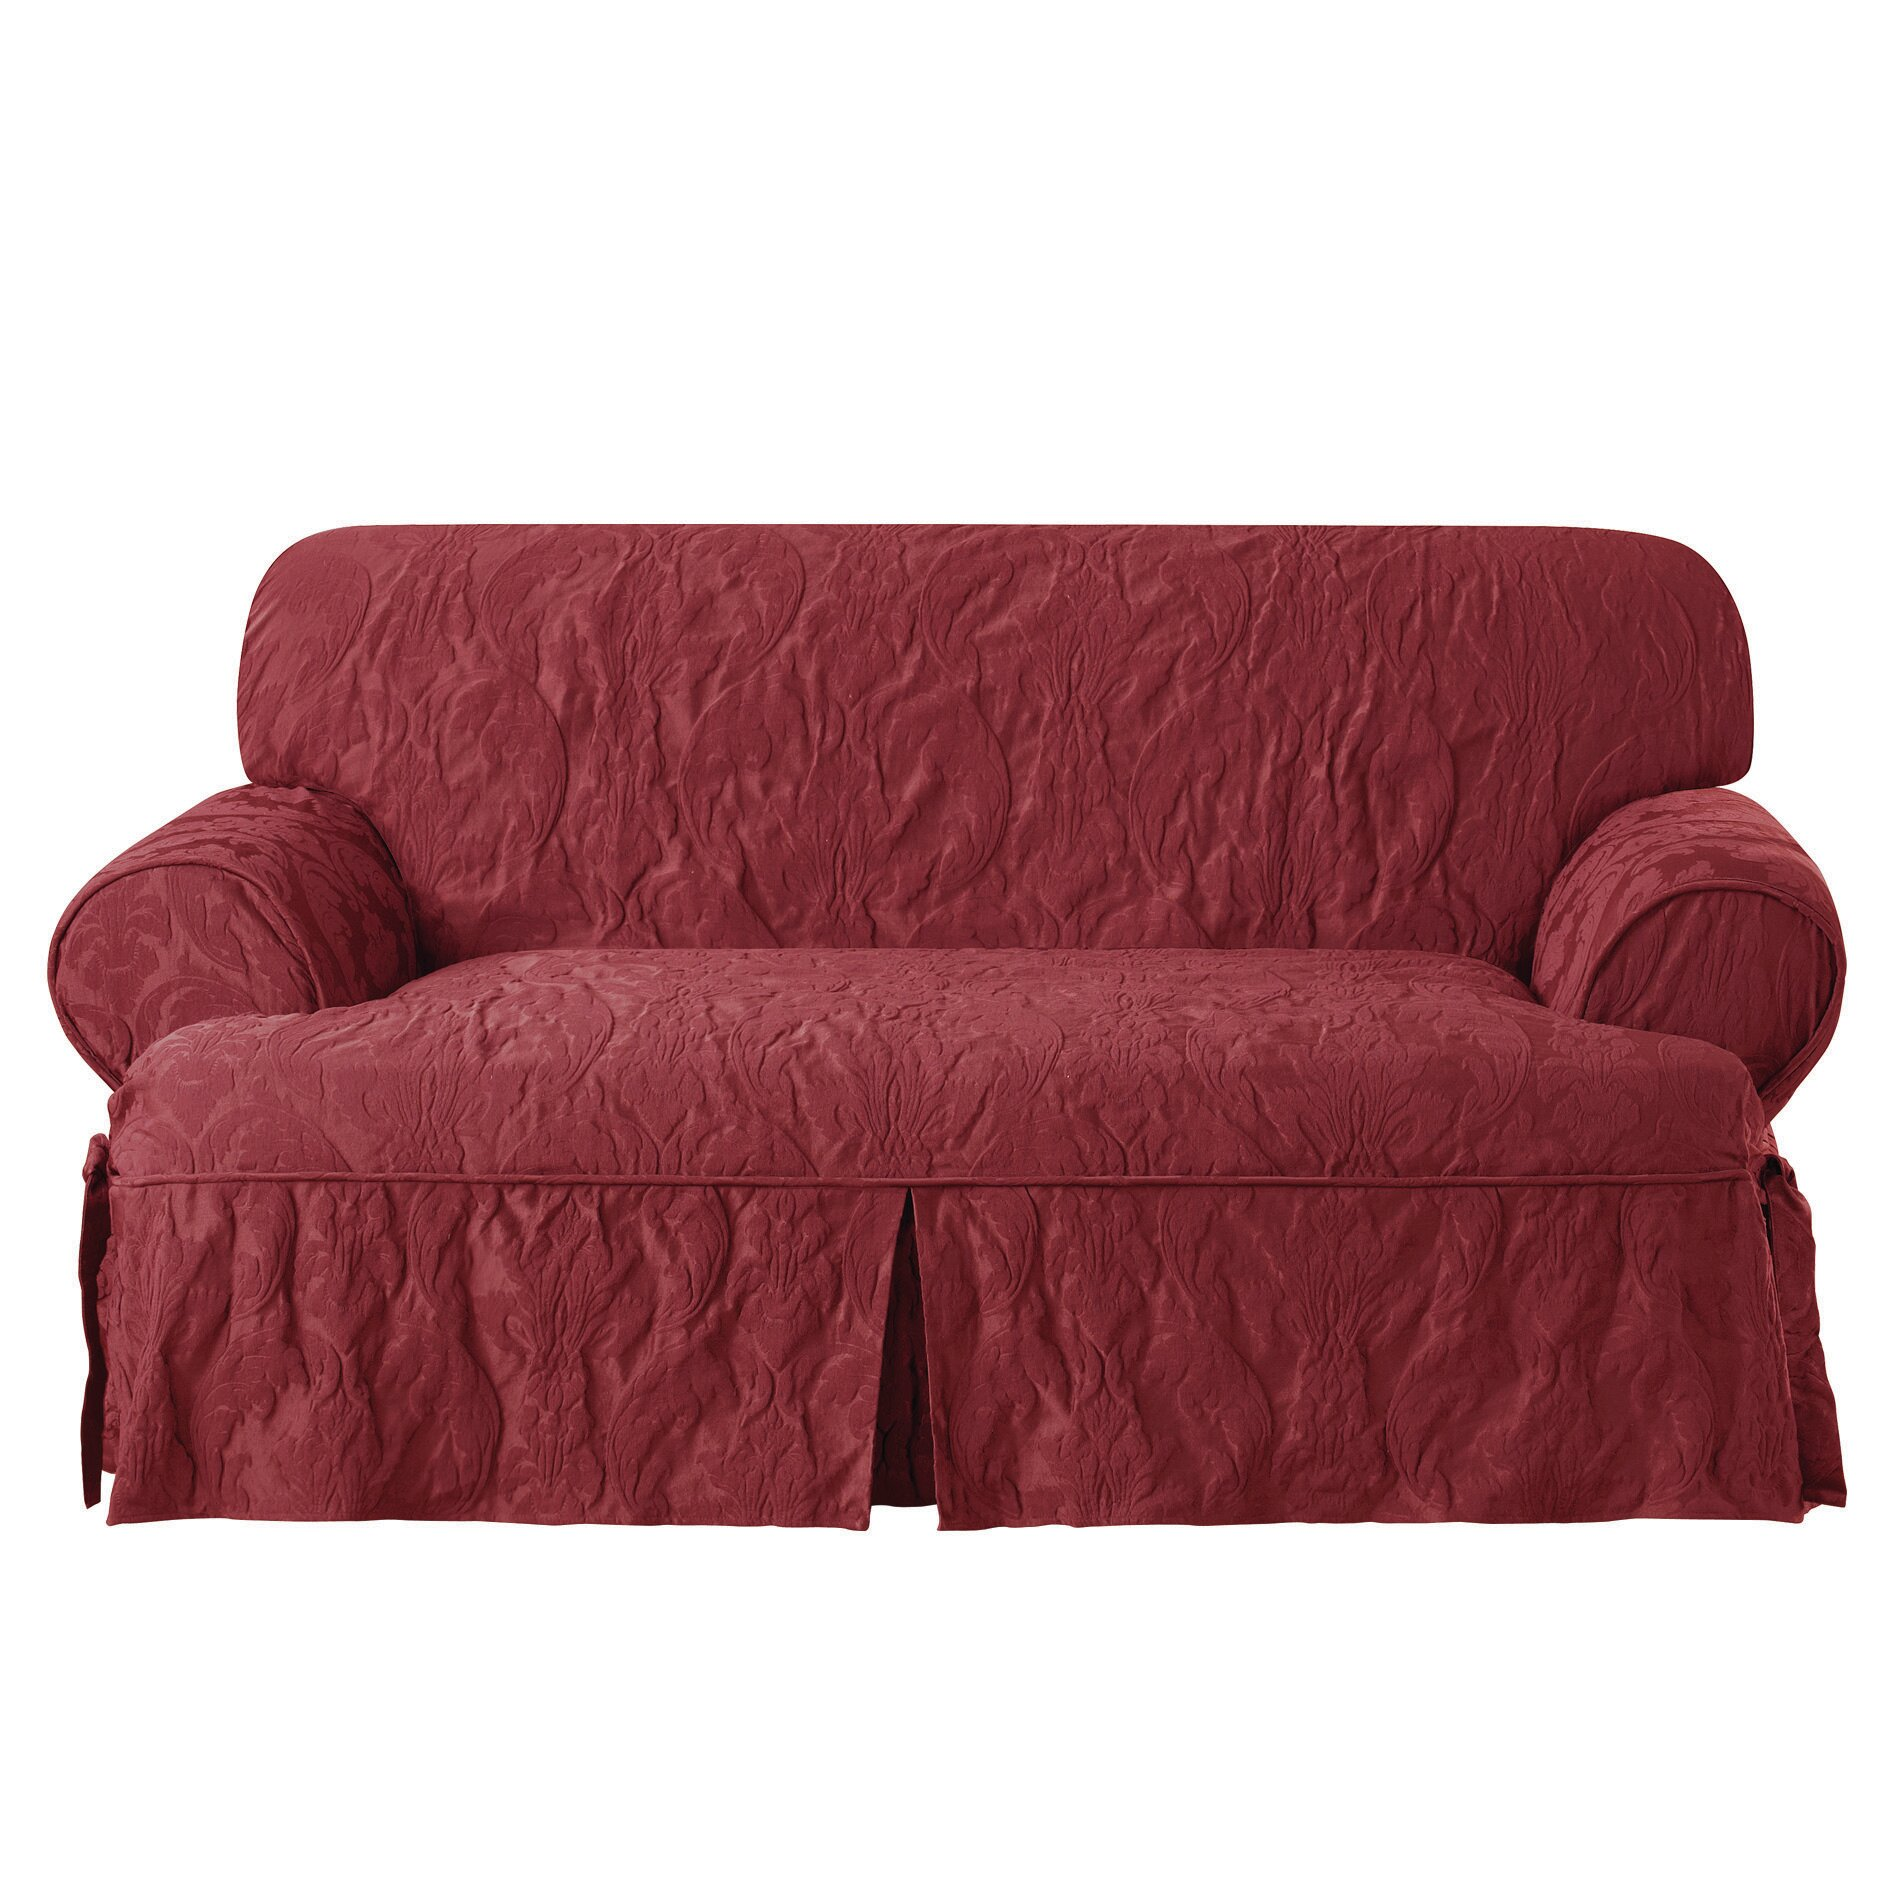 Sure fit matelasse damask loveseat t cushion slipcover Loveseat t cushion slipcovers